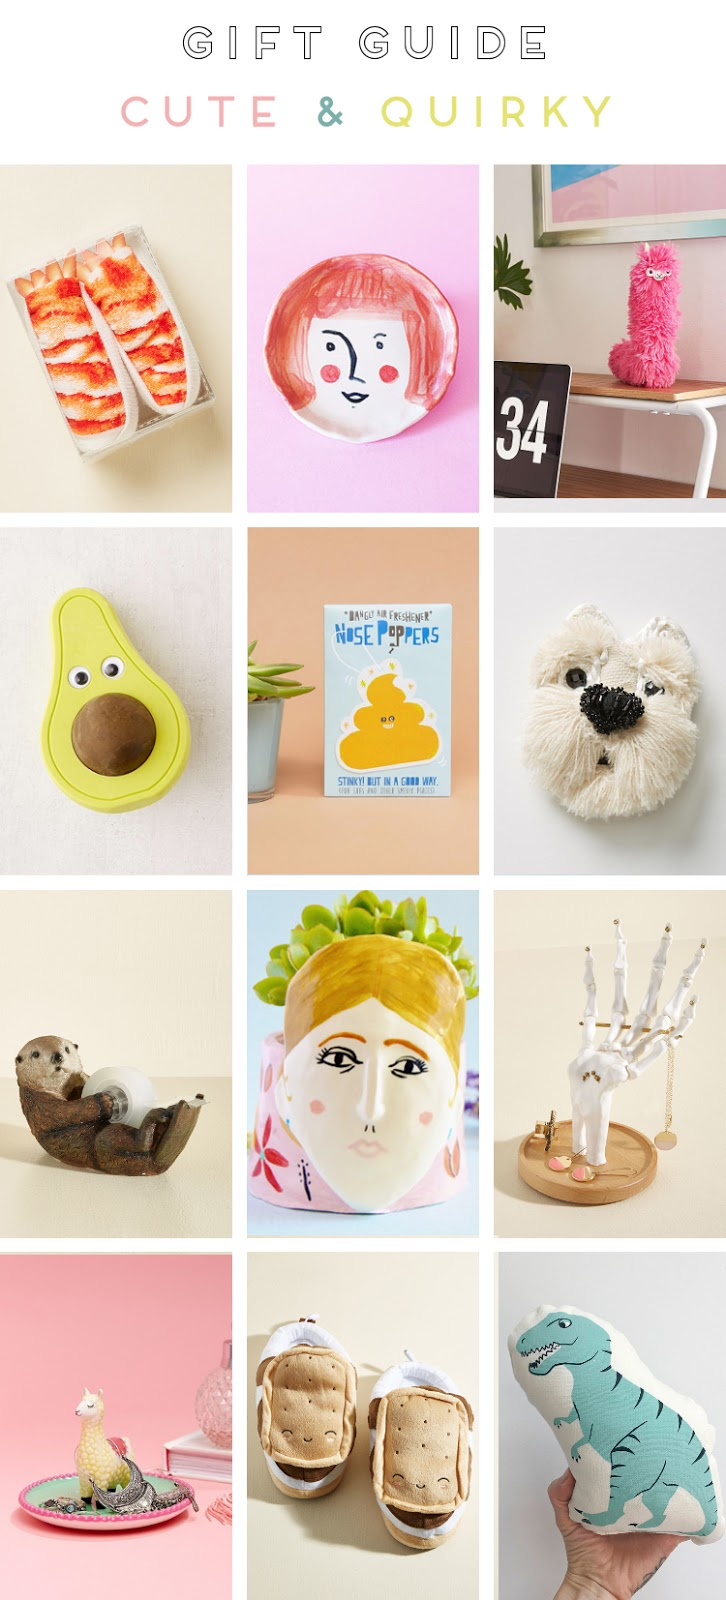 HOLIDAY GIFT GUIDE - CUTE & QUIRKY.